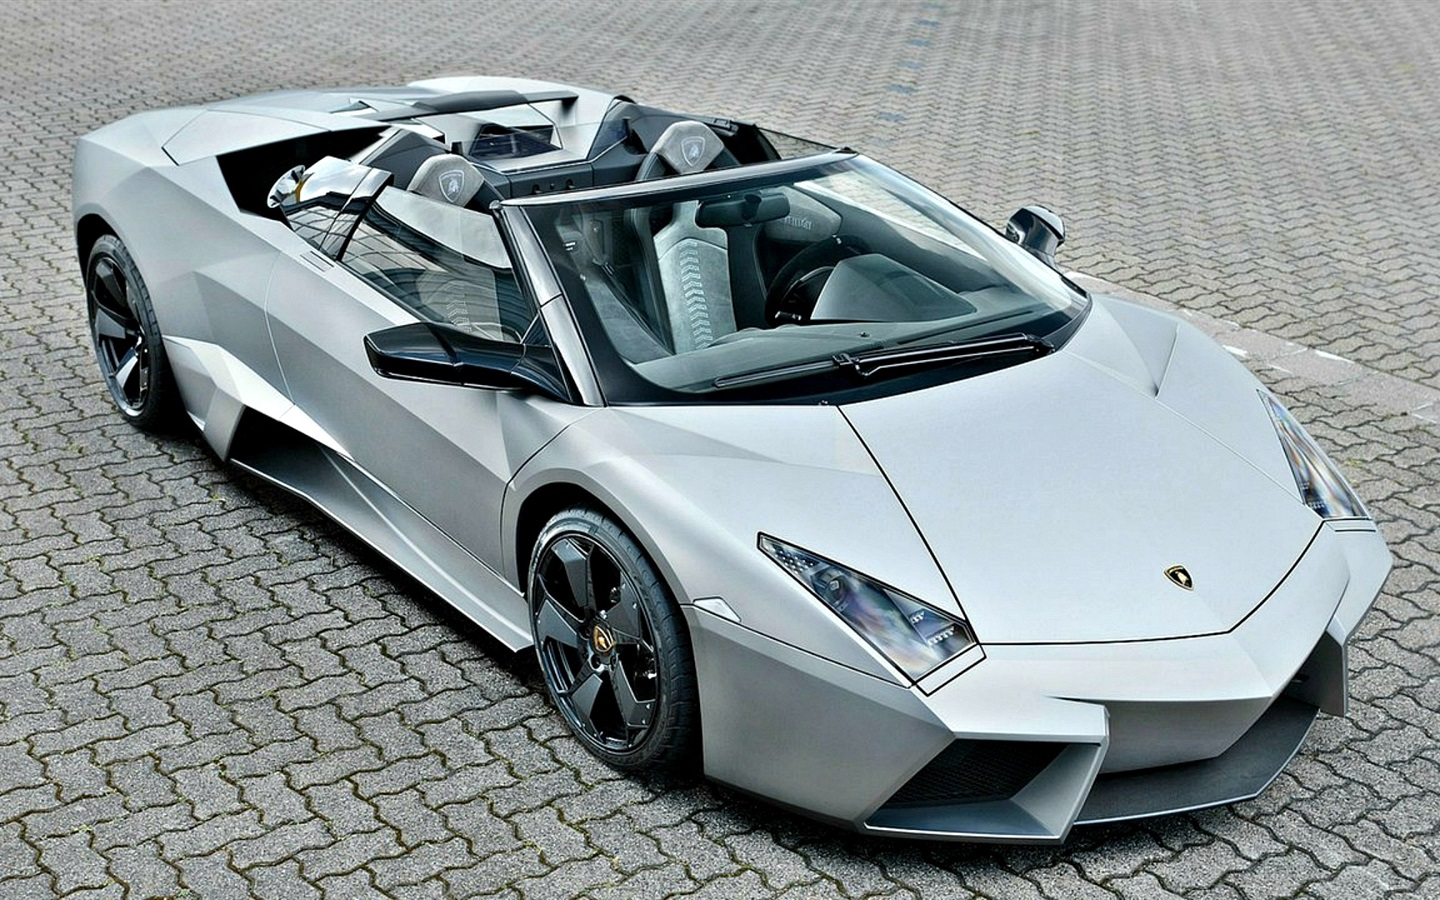 Lamborghini Cars 2018 2017 Reviews Photos Video Specs Price